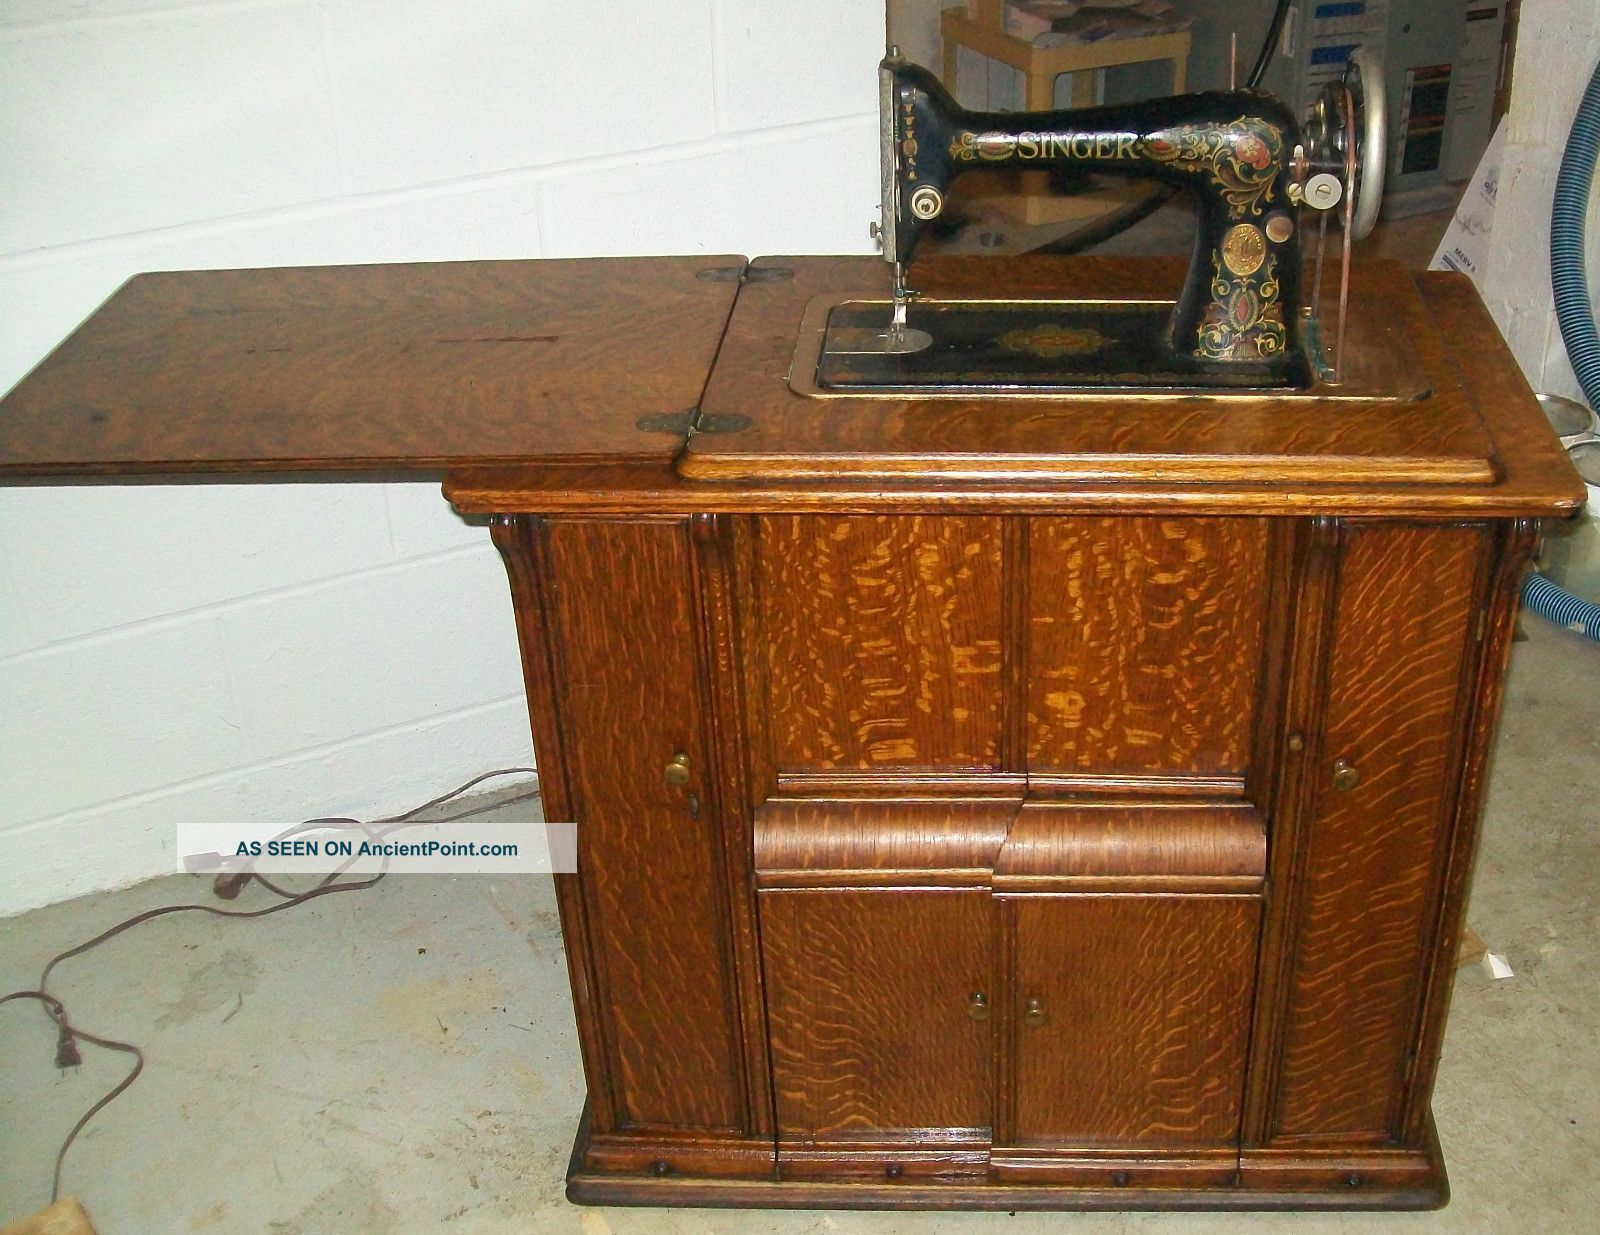 Delicieux 1920 Singer Sewing Machine And Parlor Cabinet, Model 66, Antique .